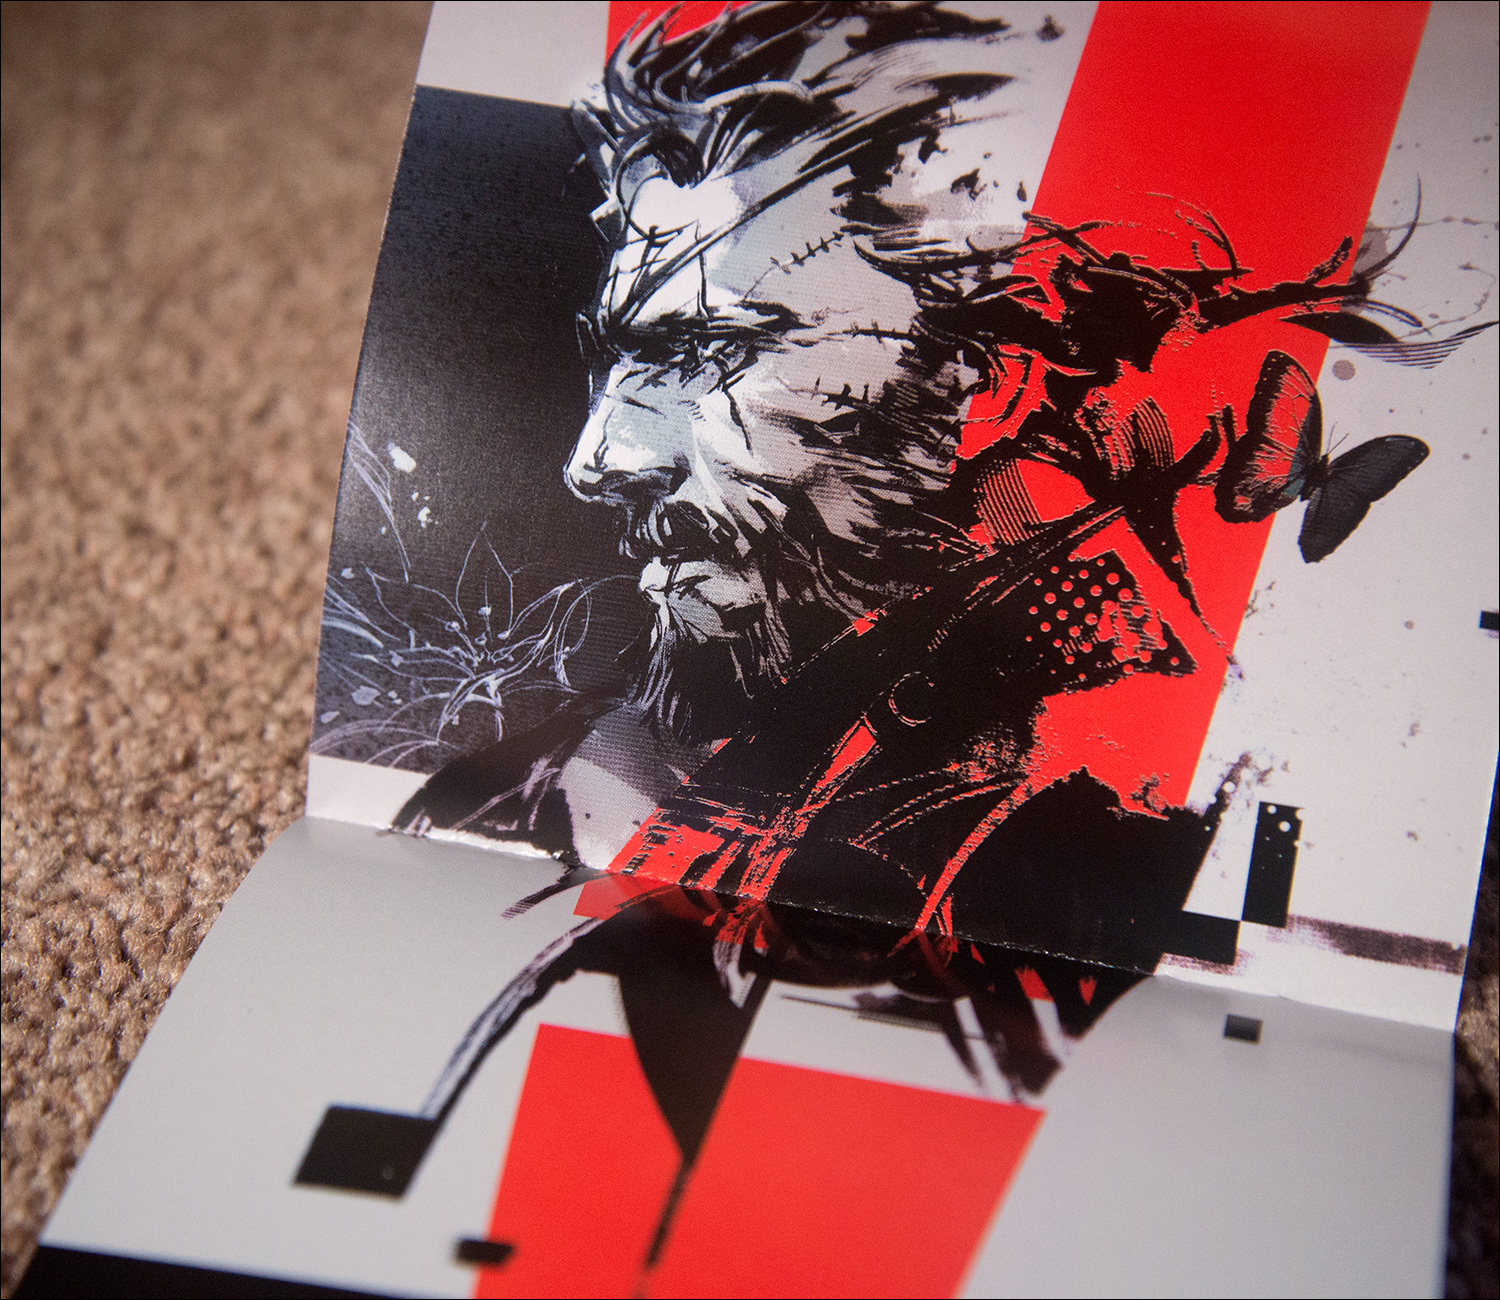 Metal-Gear-Solid-V-The-Lost-Tapes-Booklet-Venom-Snake-Art-Shinkawa